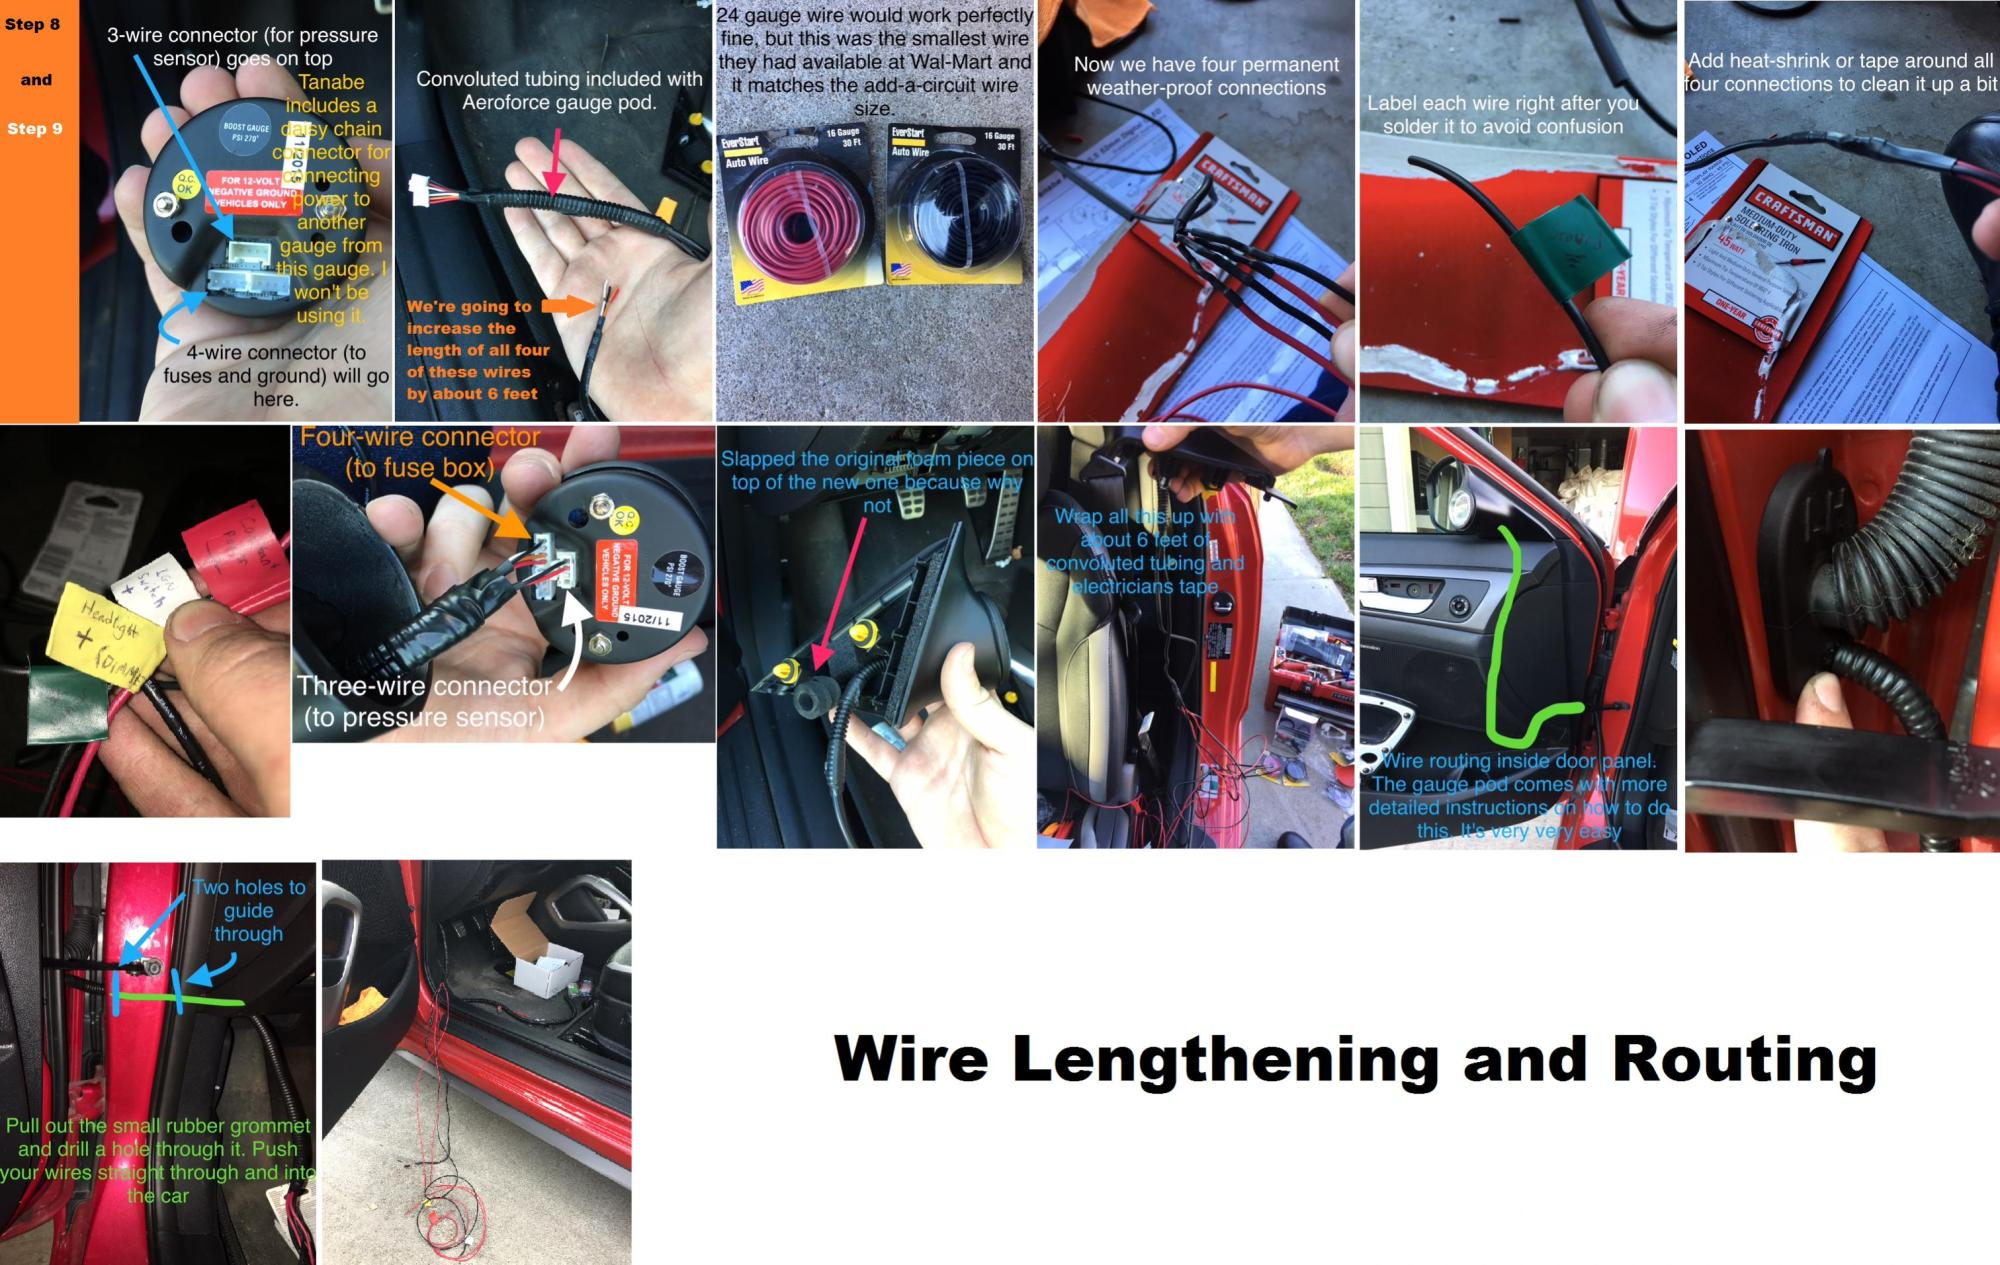 hight resolution of name 3 wire lengthening and routing jpg views 1186 size 712 5